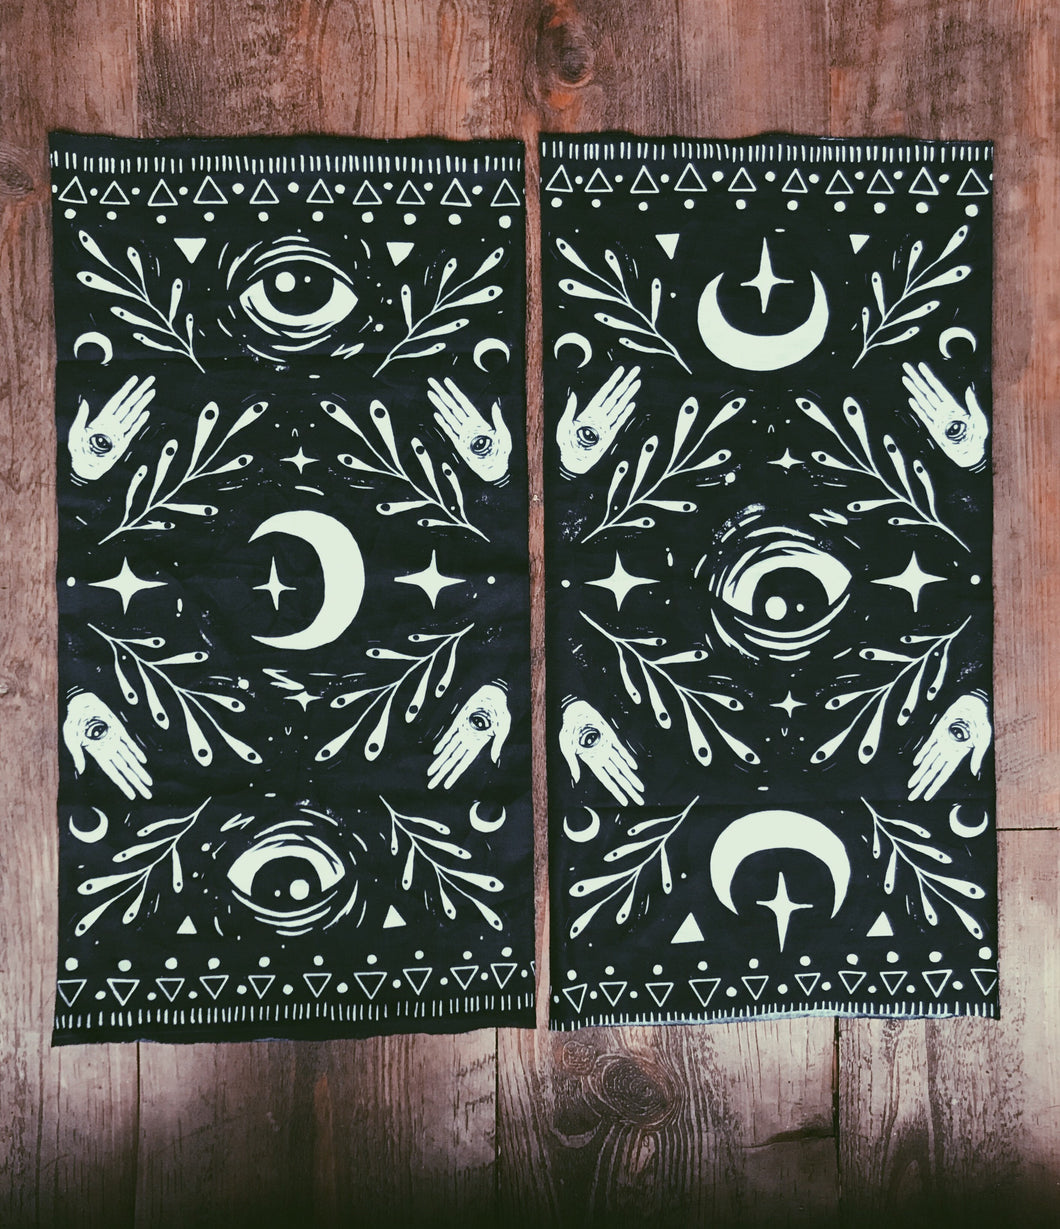 "Moon Child Tube Bandana - 9"" x 18"" Protective Face Covering  - Limited Edition"